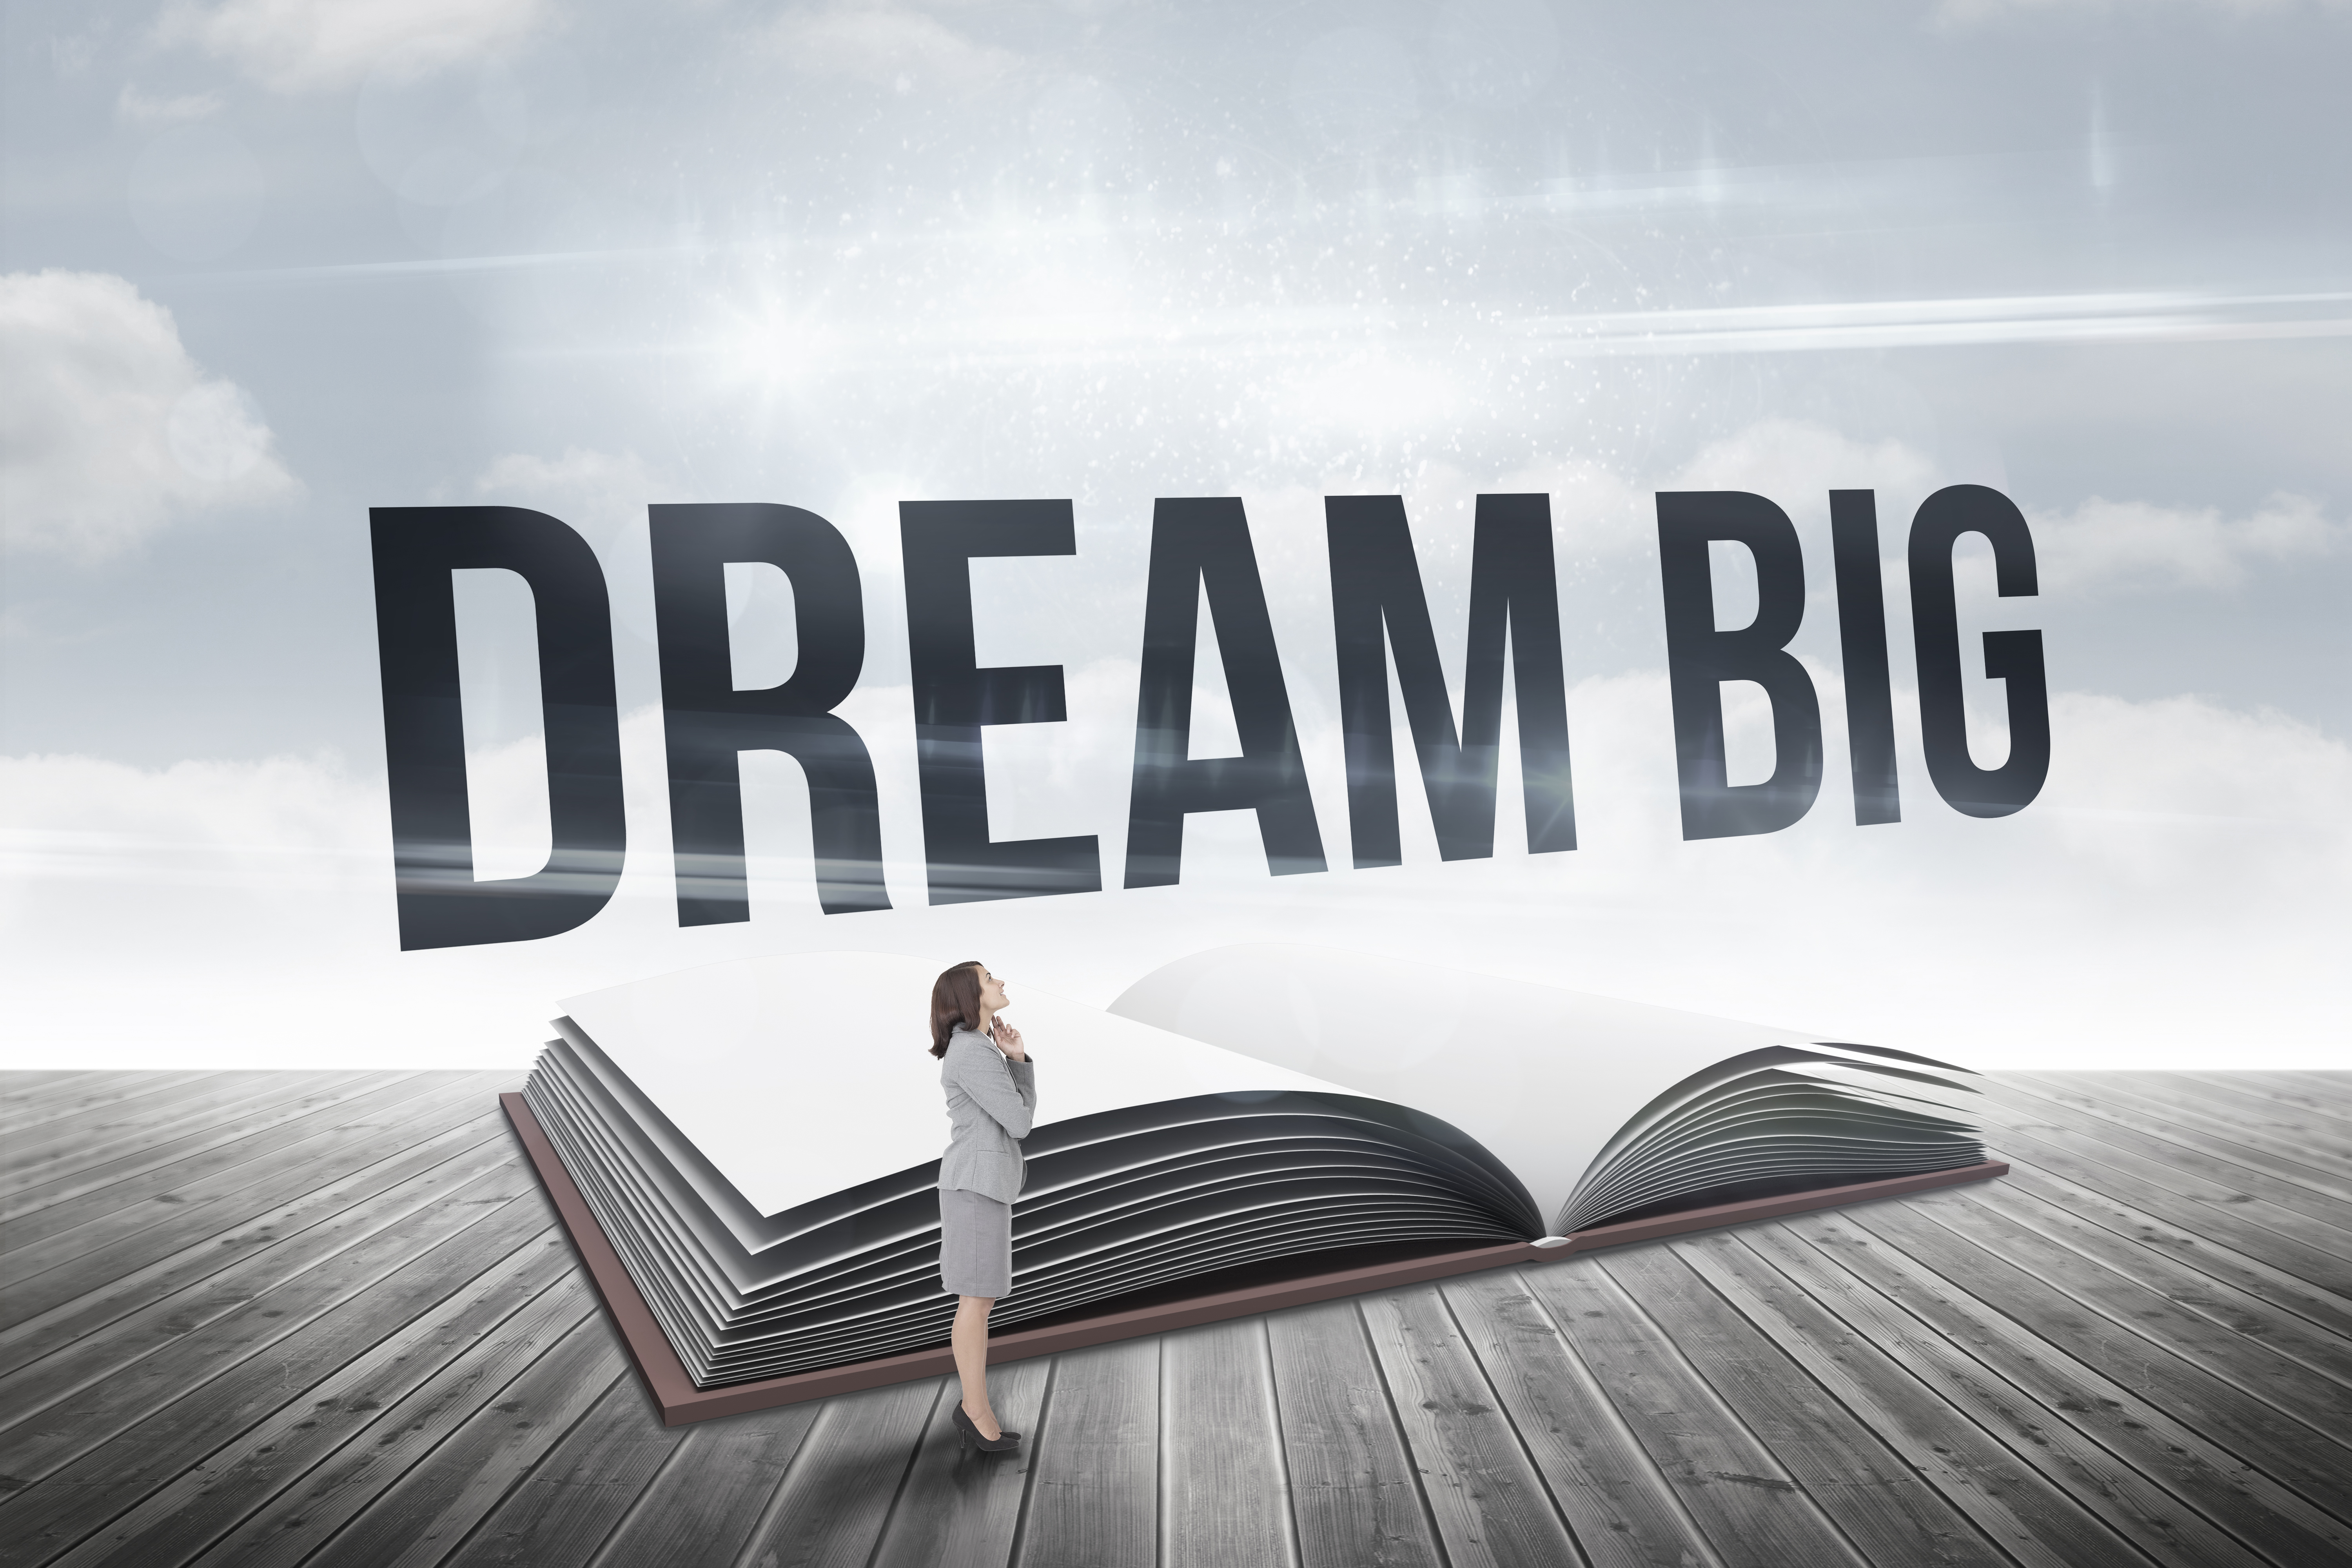 Image of woman standing in front of large book with words dream big